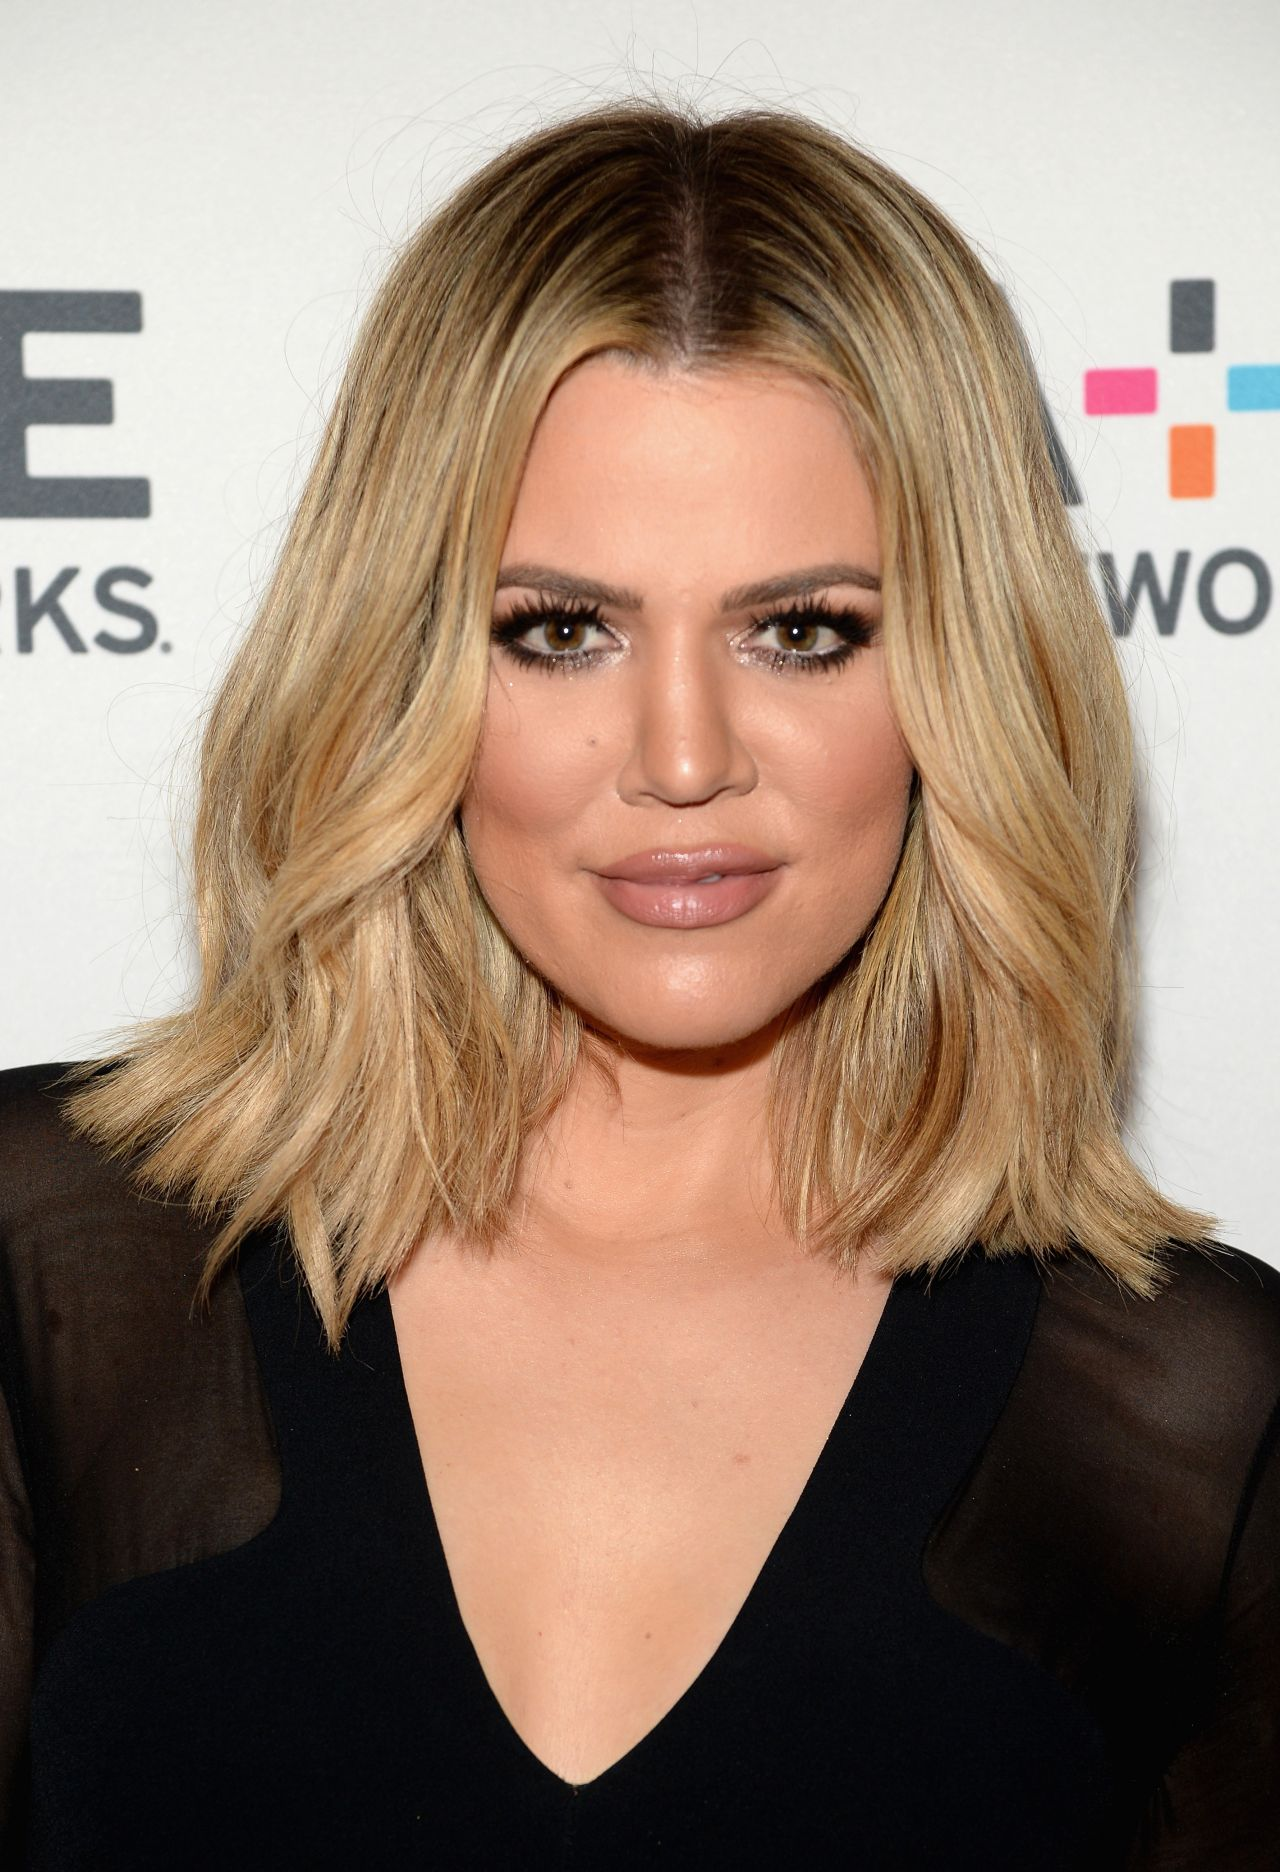 Khloe Kardashian Kocktails With Khloe Panel 2016